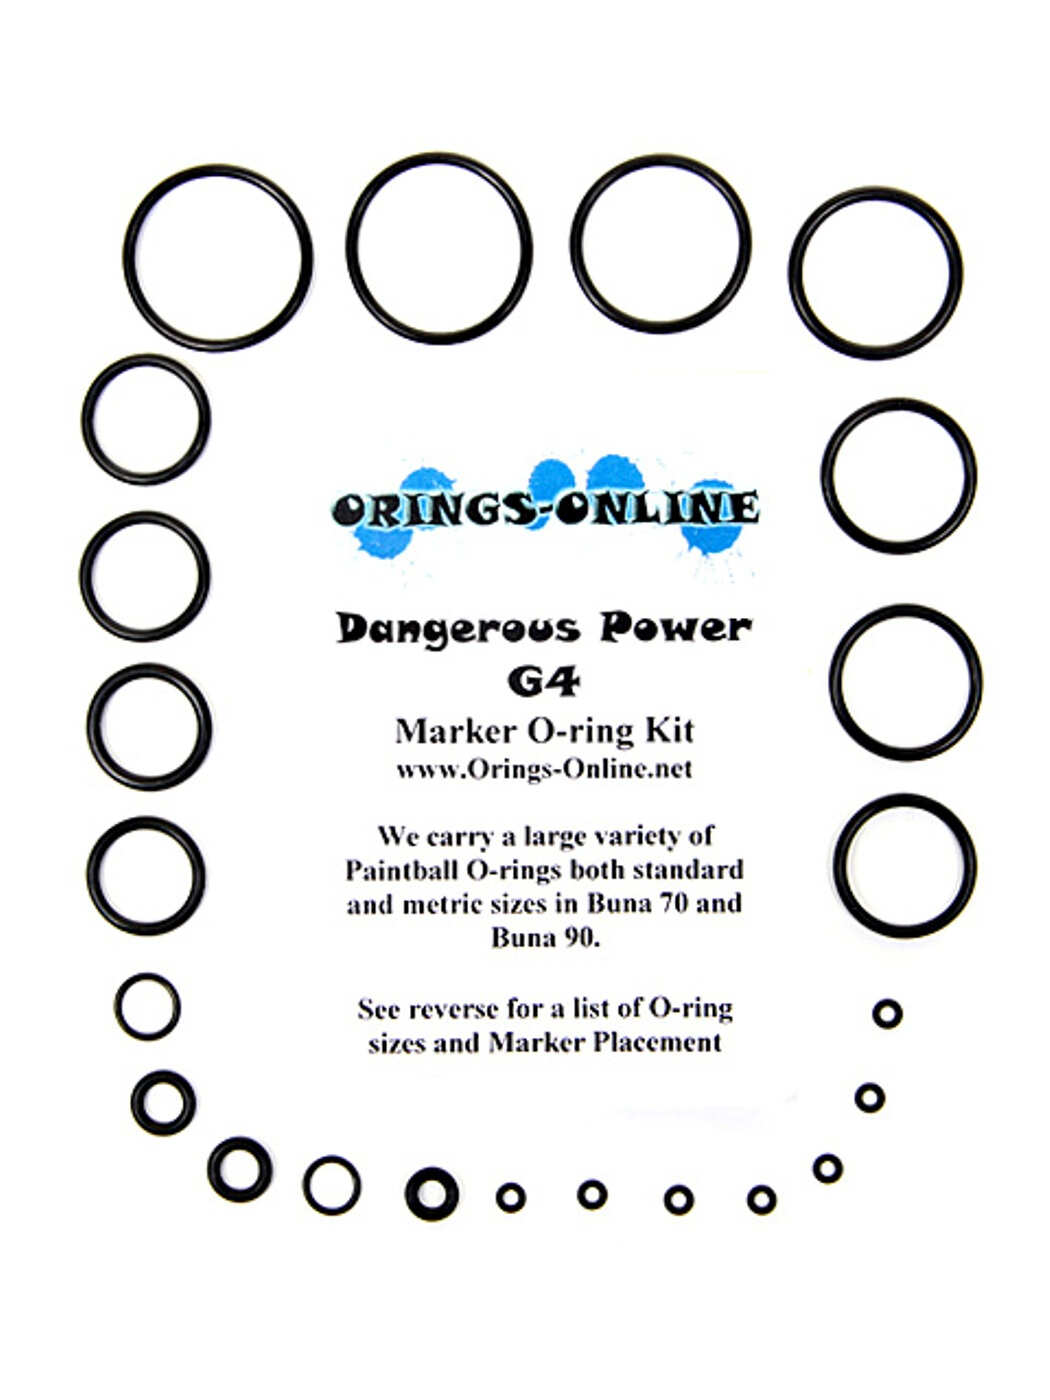 Dangerous Power G4 Marker O-ring Kit